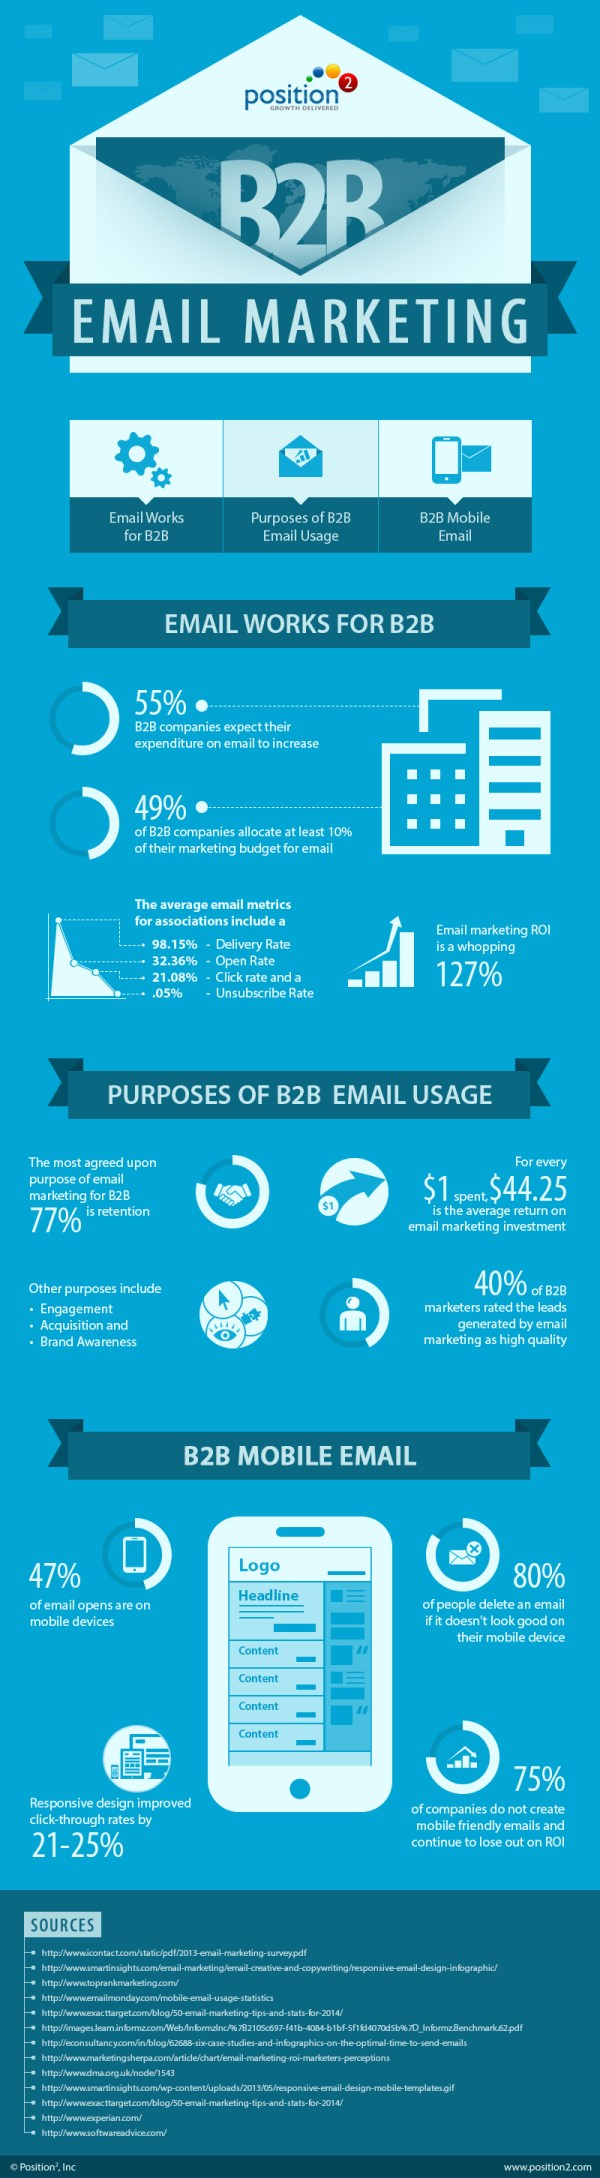 Infographic_B2B_Email_Marketing_120413-1